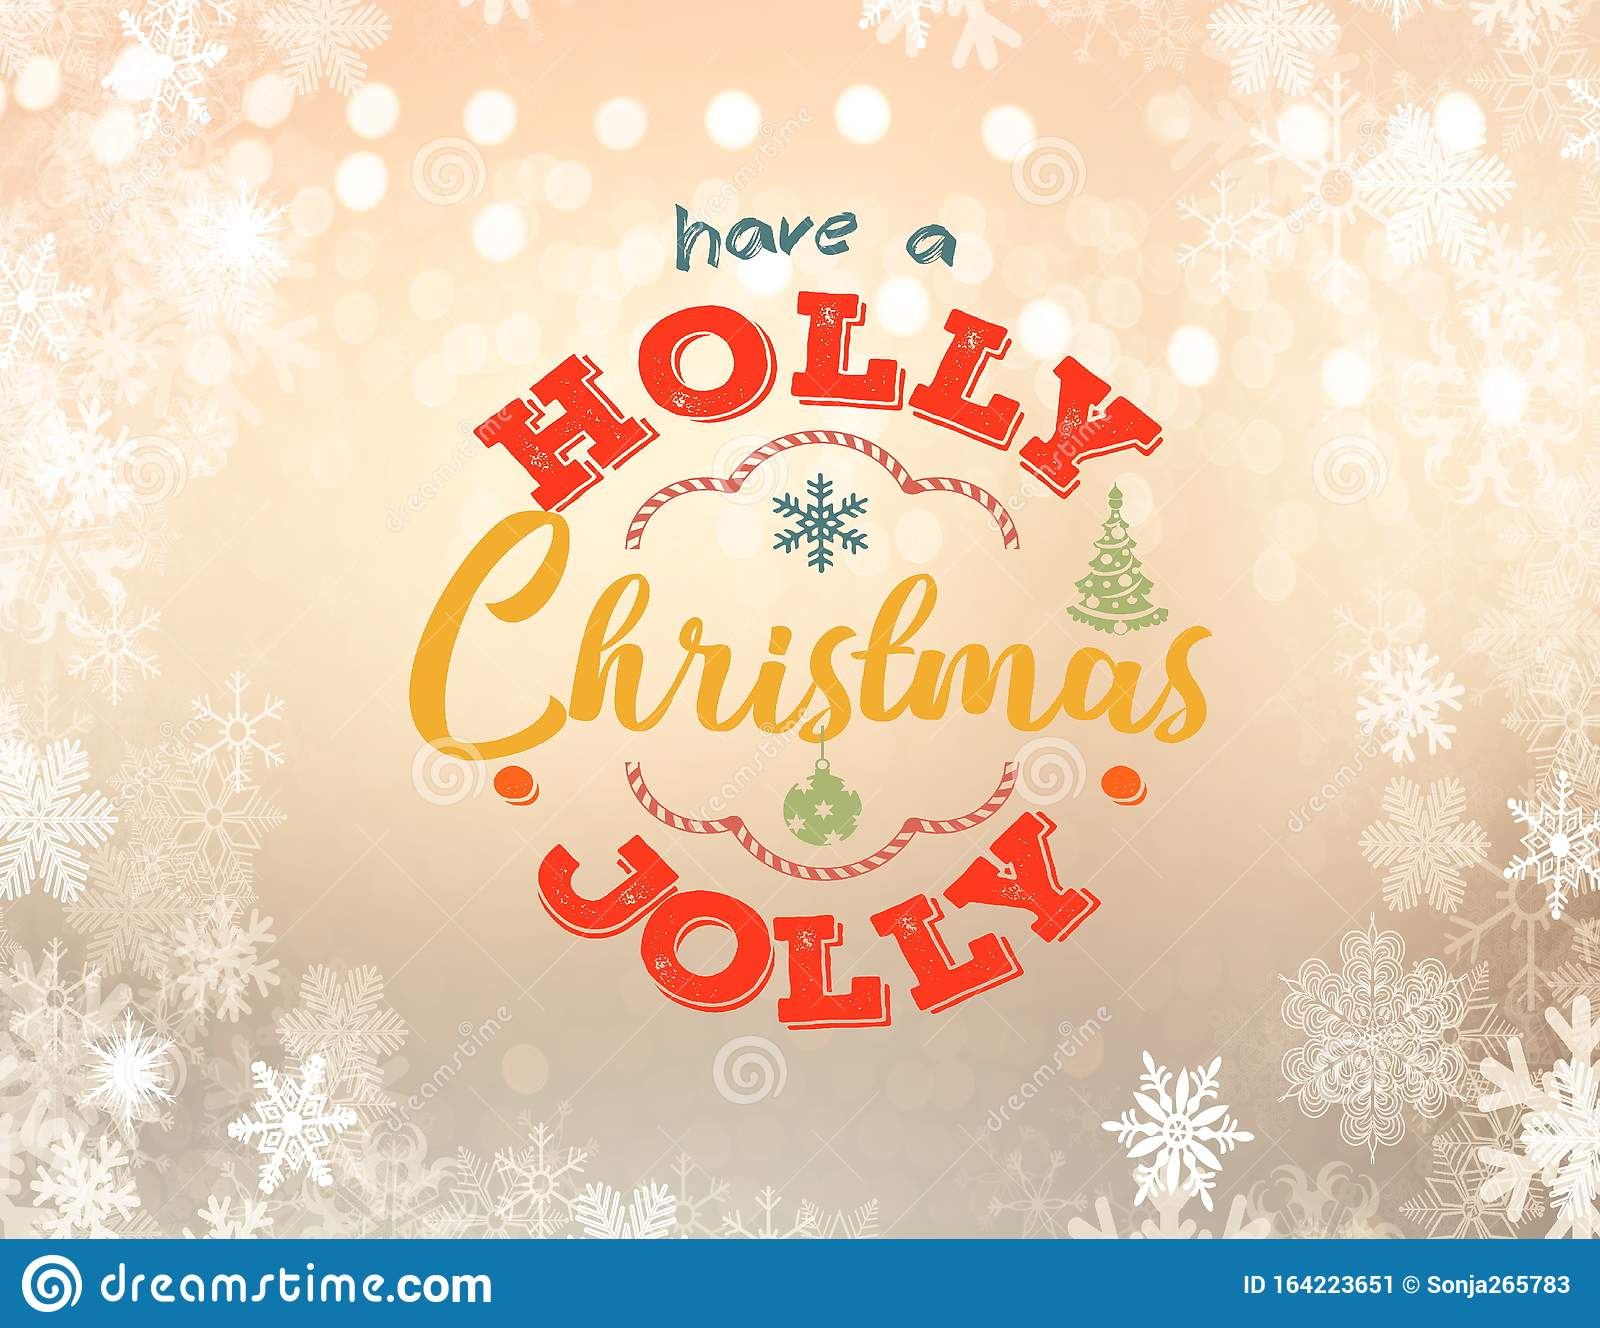 merry christmas and happy new year wishes quotes text